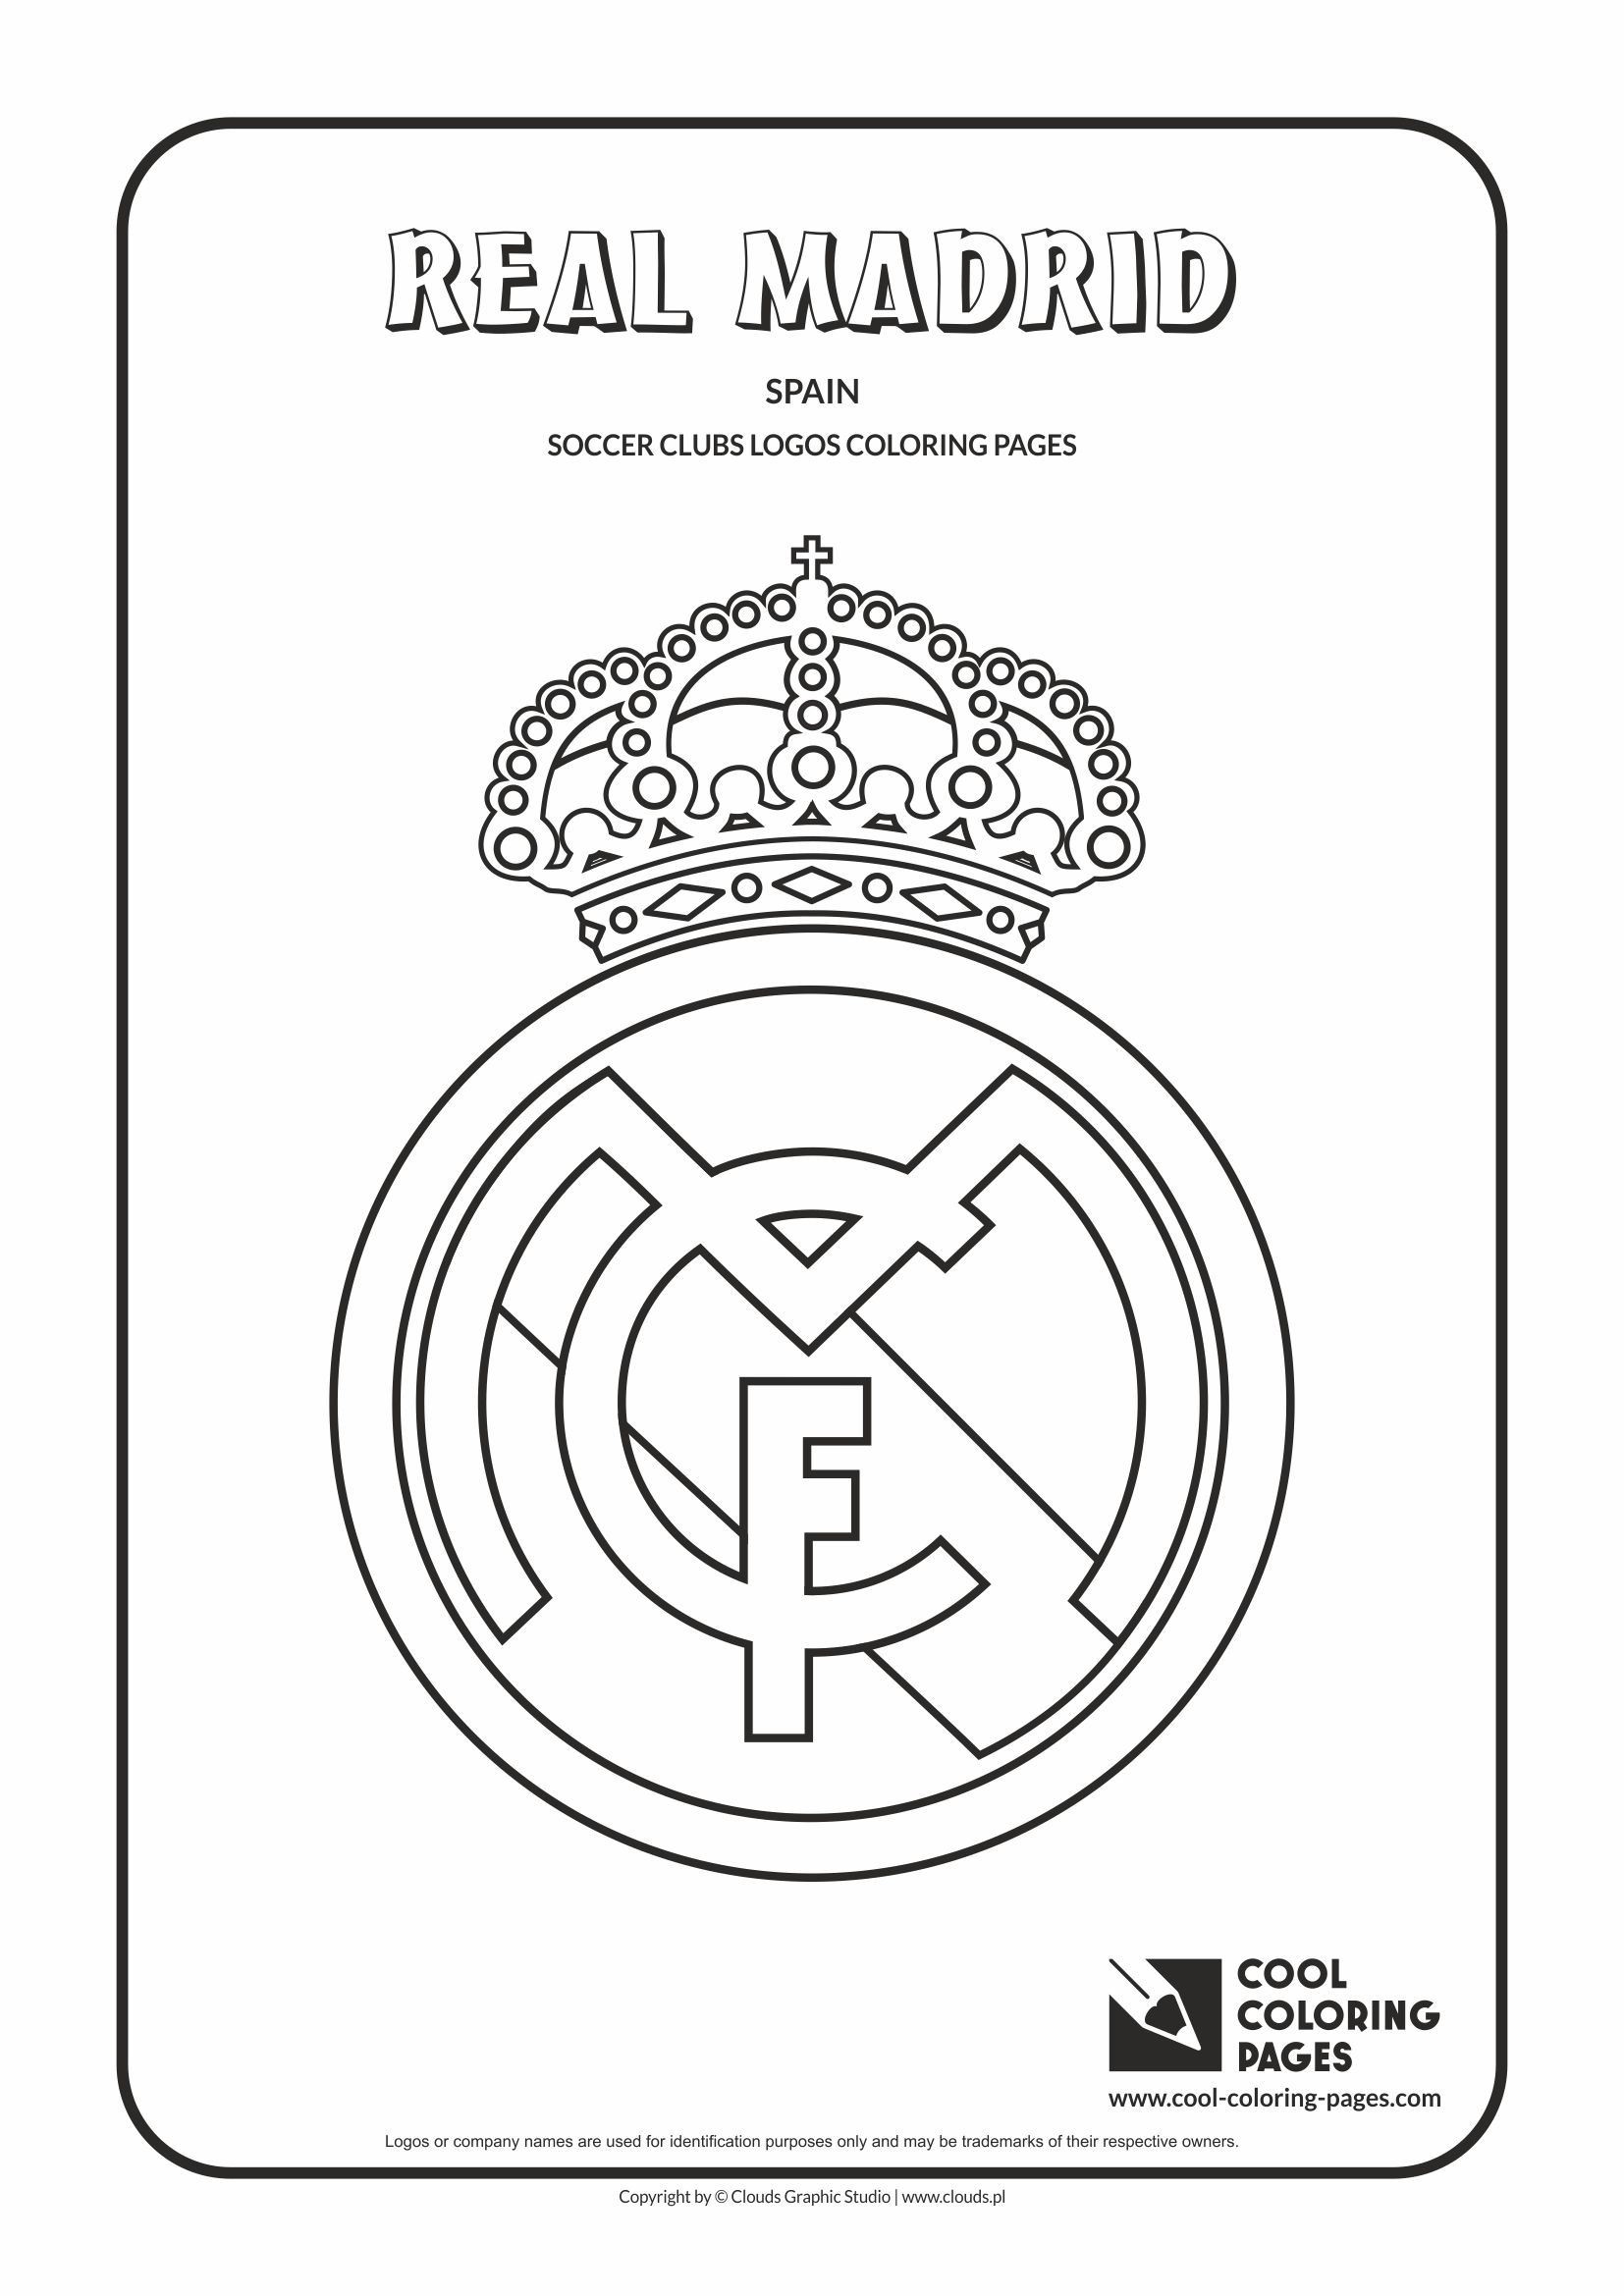 Cool Coloring Pages Soccer clubs logos Cool Coloring Pages Free